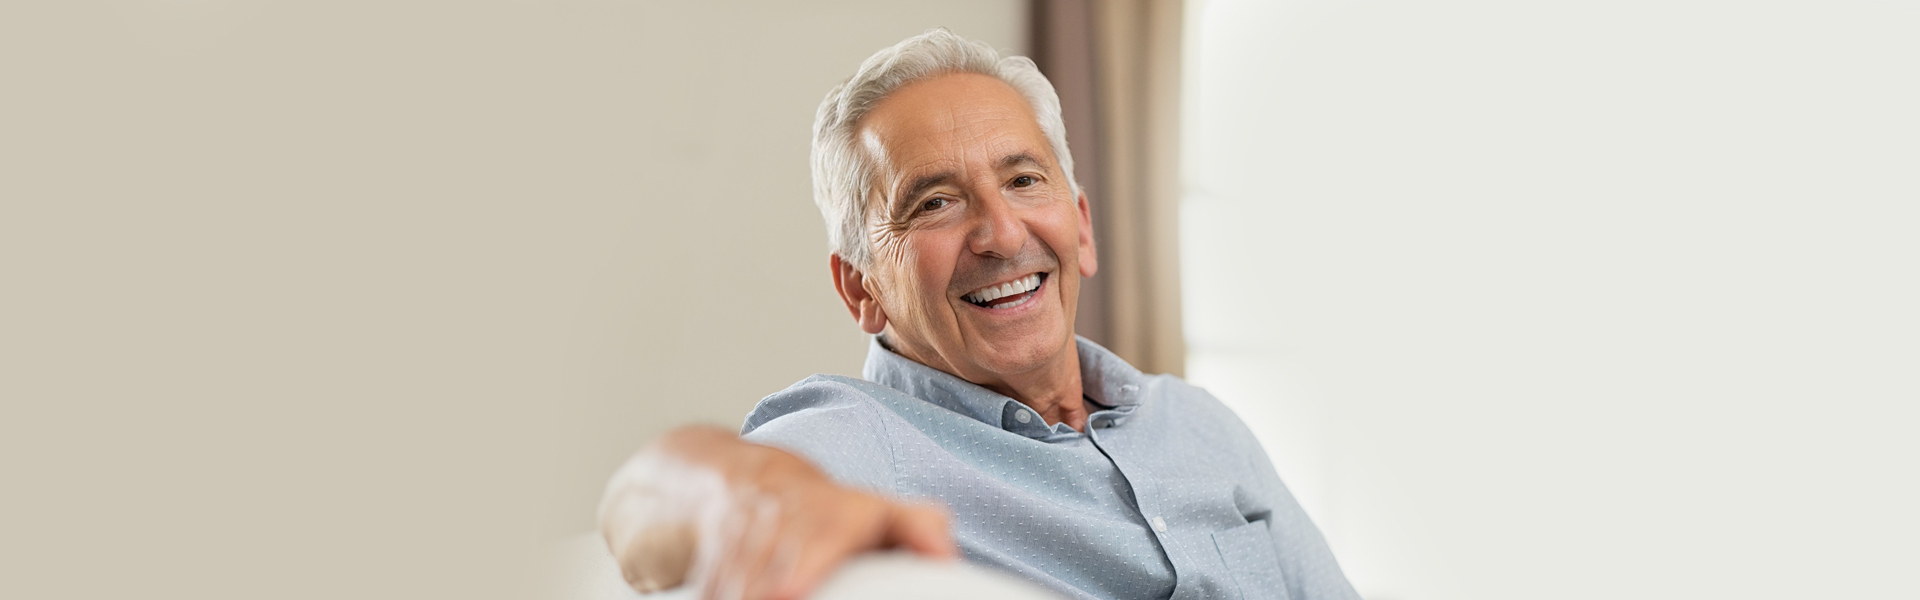 The Benefits of Getting Dental Implants and Their Risks